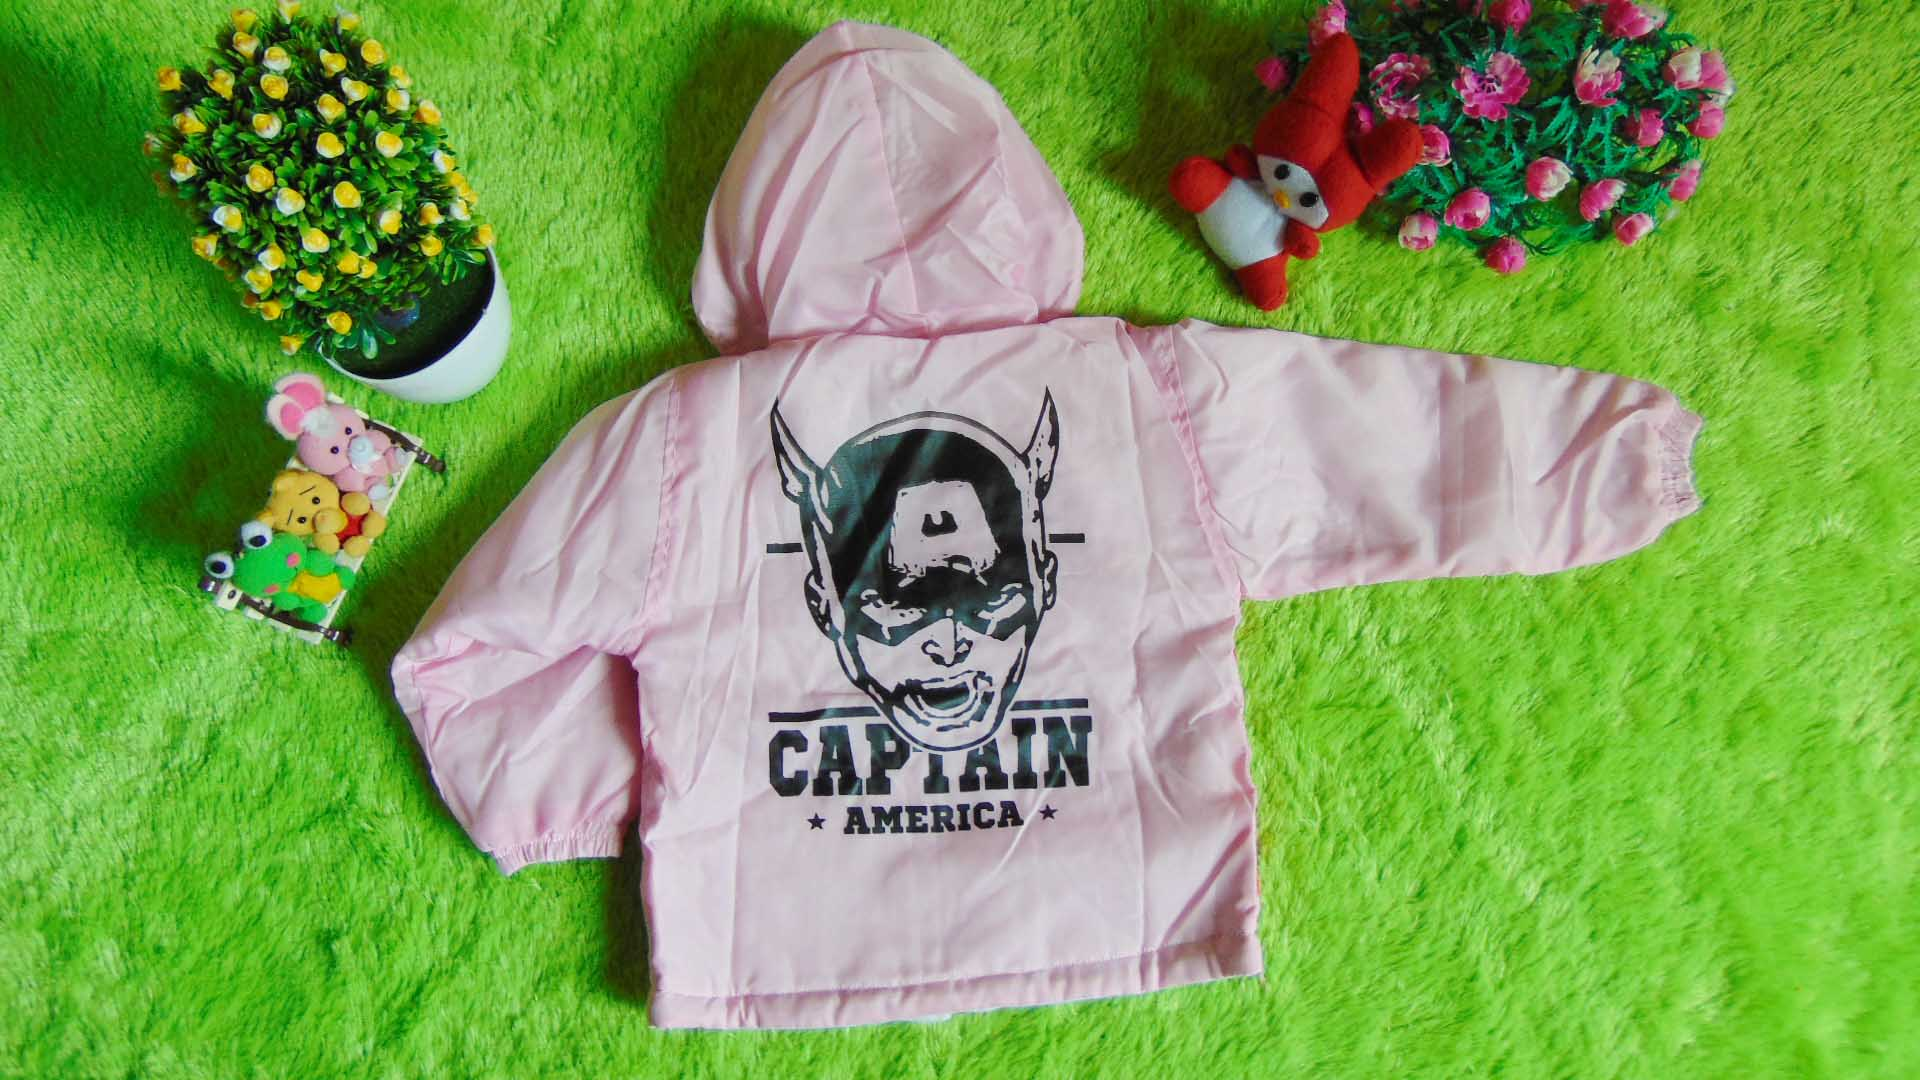 jaket bayi 0-2th waterproof - jaket anti air captain america pink 55 lebar dada 32cm,panjang ke bawah 34cm (1)